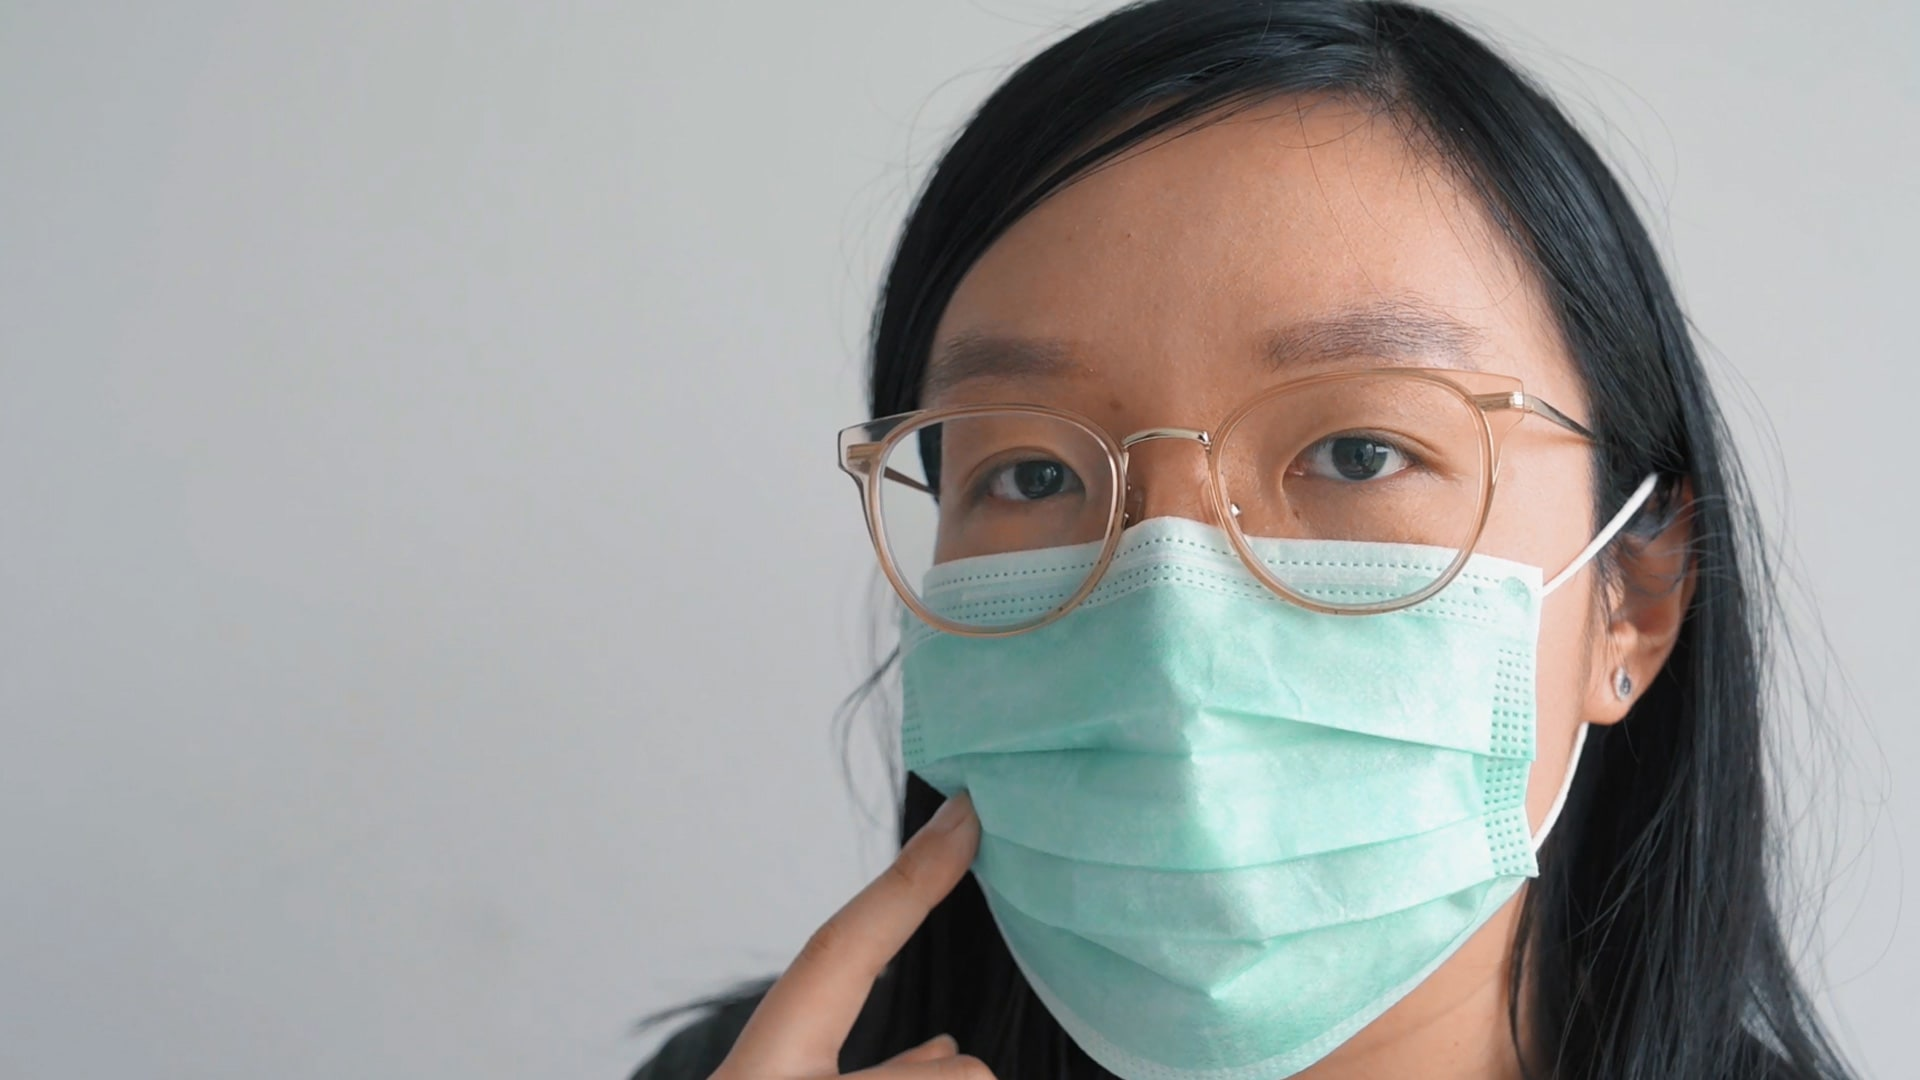 How to protect yourself from the Wuhan virus